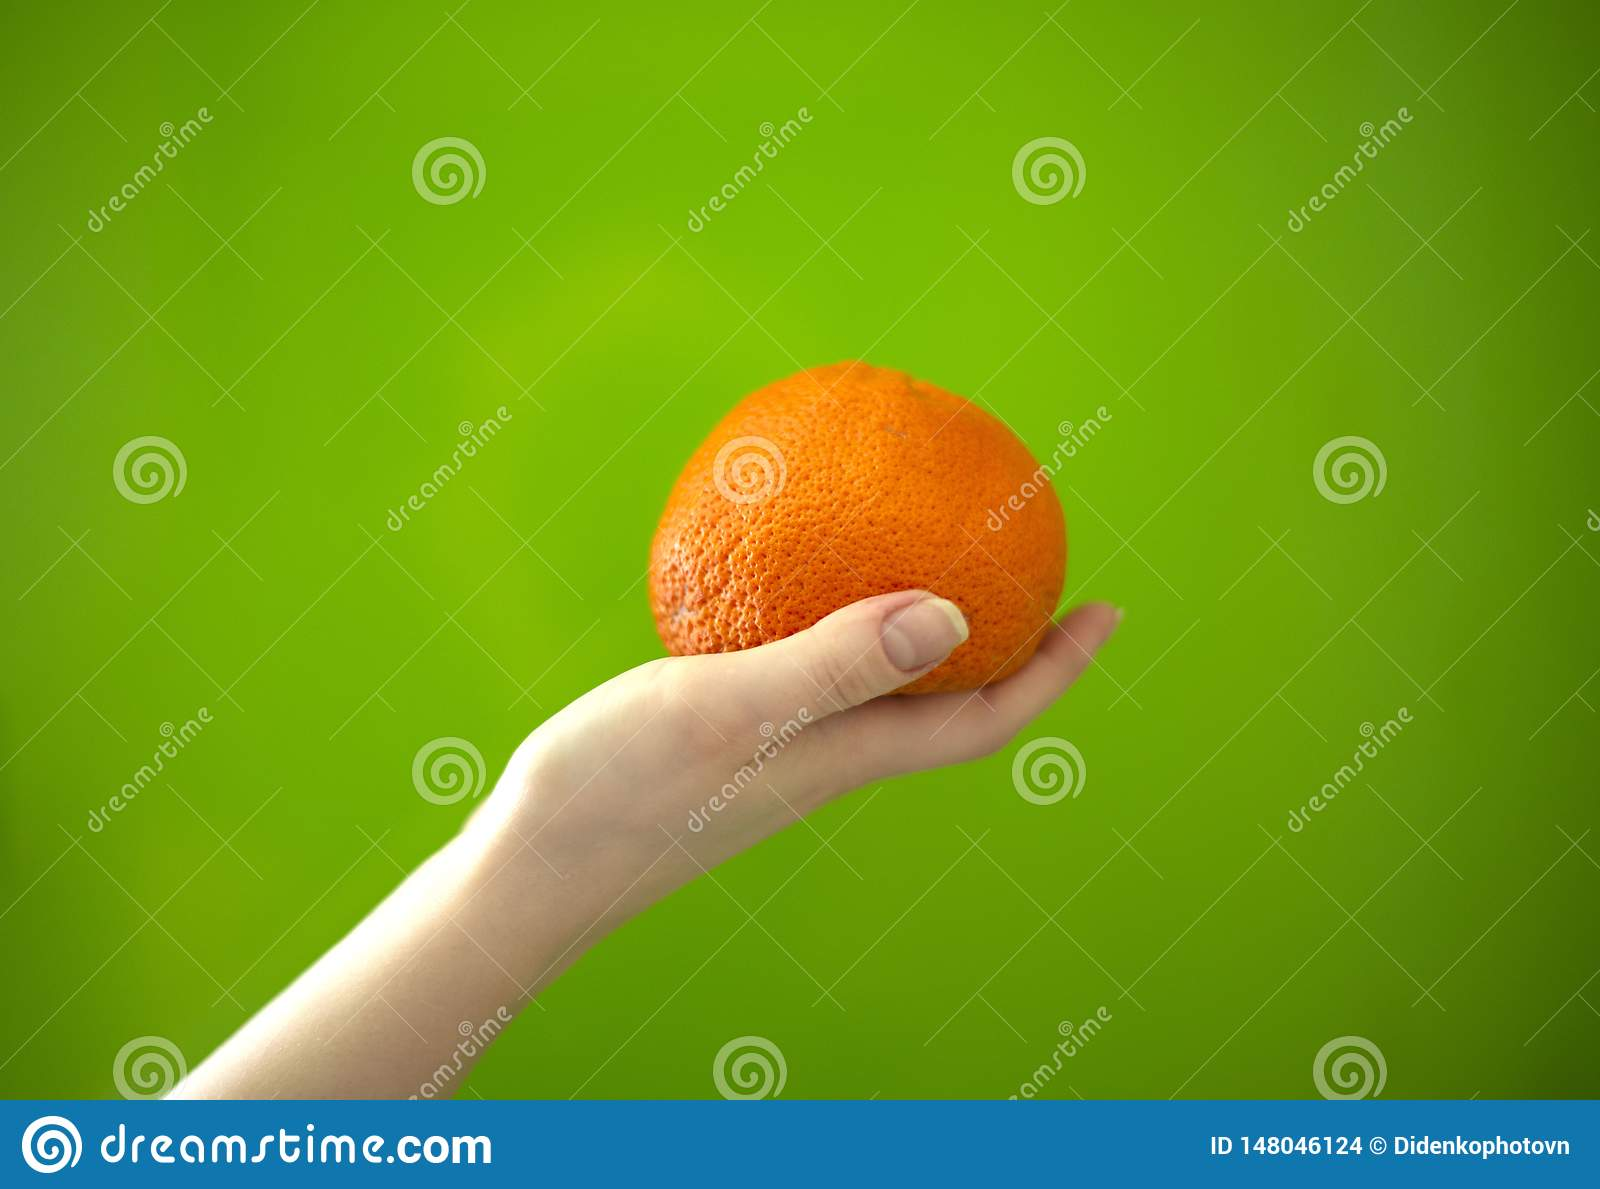 Mandarin in hand on a green background